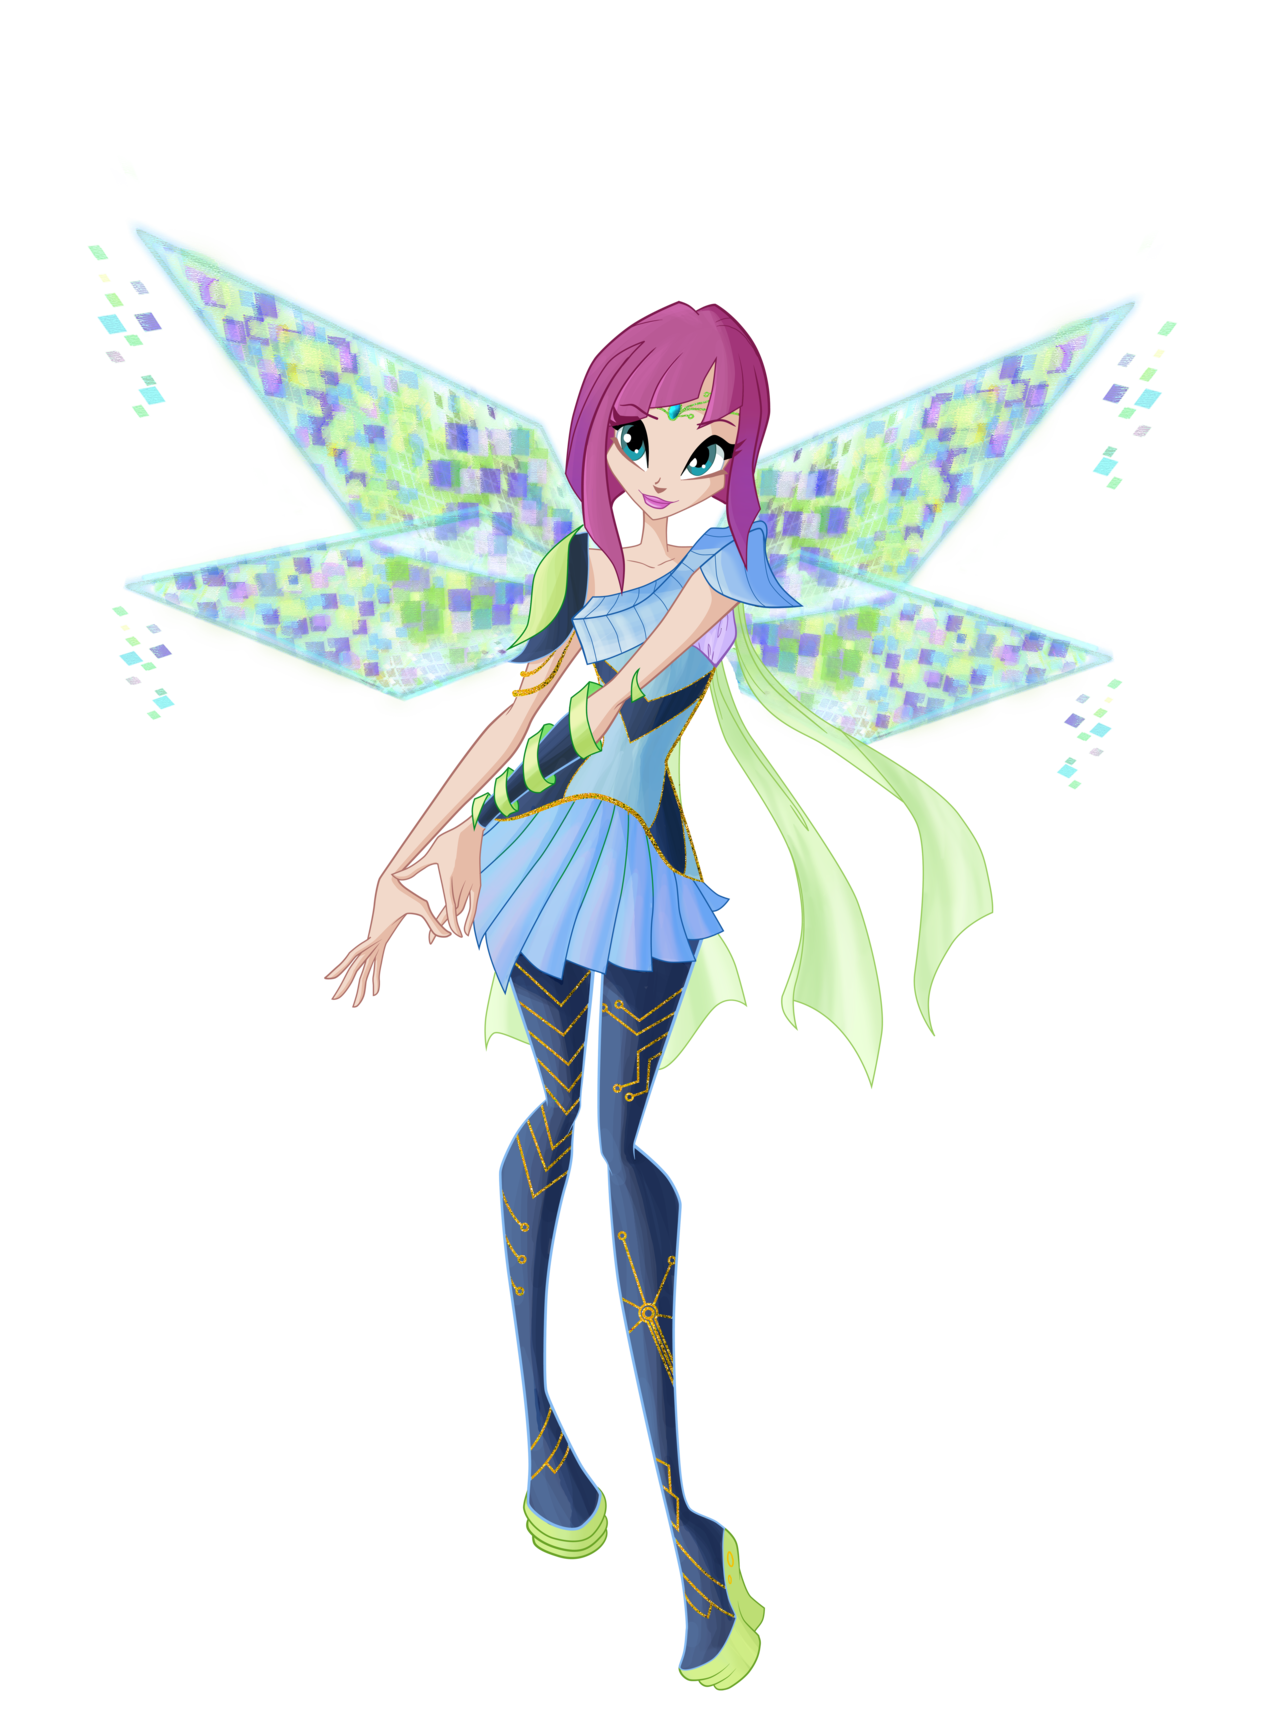 Cartoon pictures home winx winx club tecna winx pictures winx club